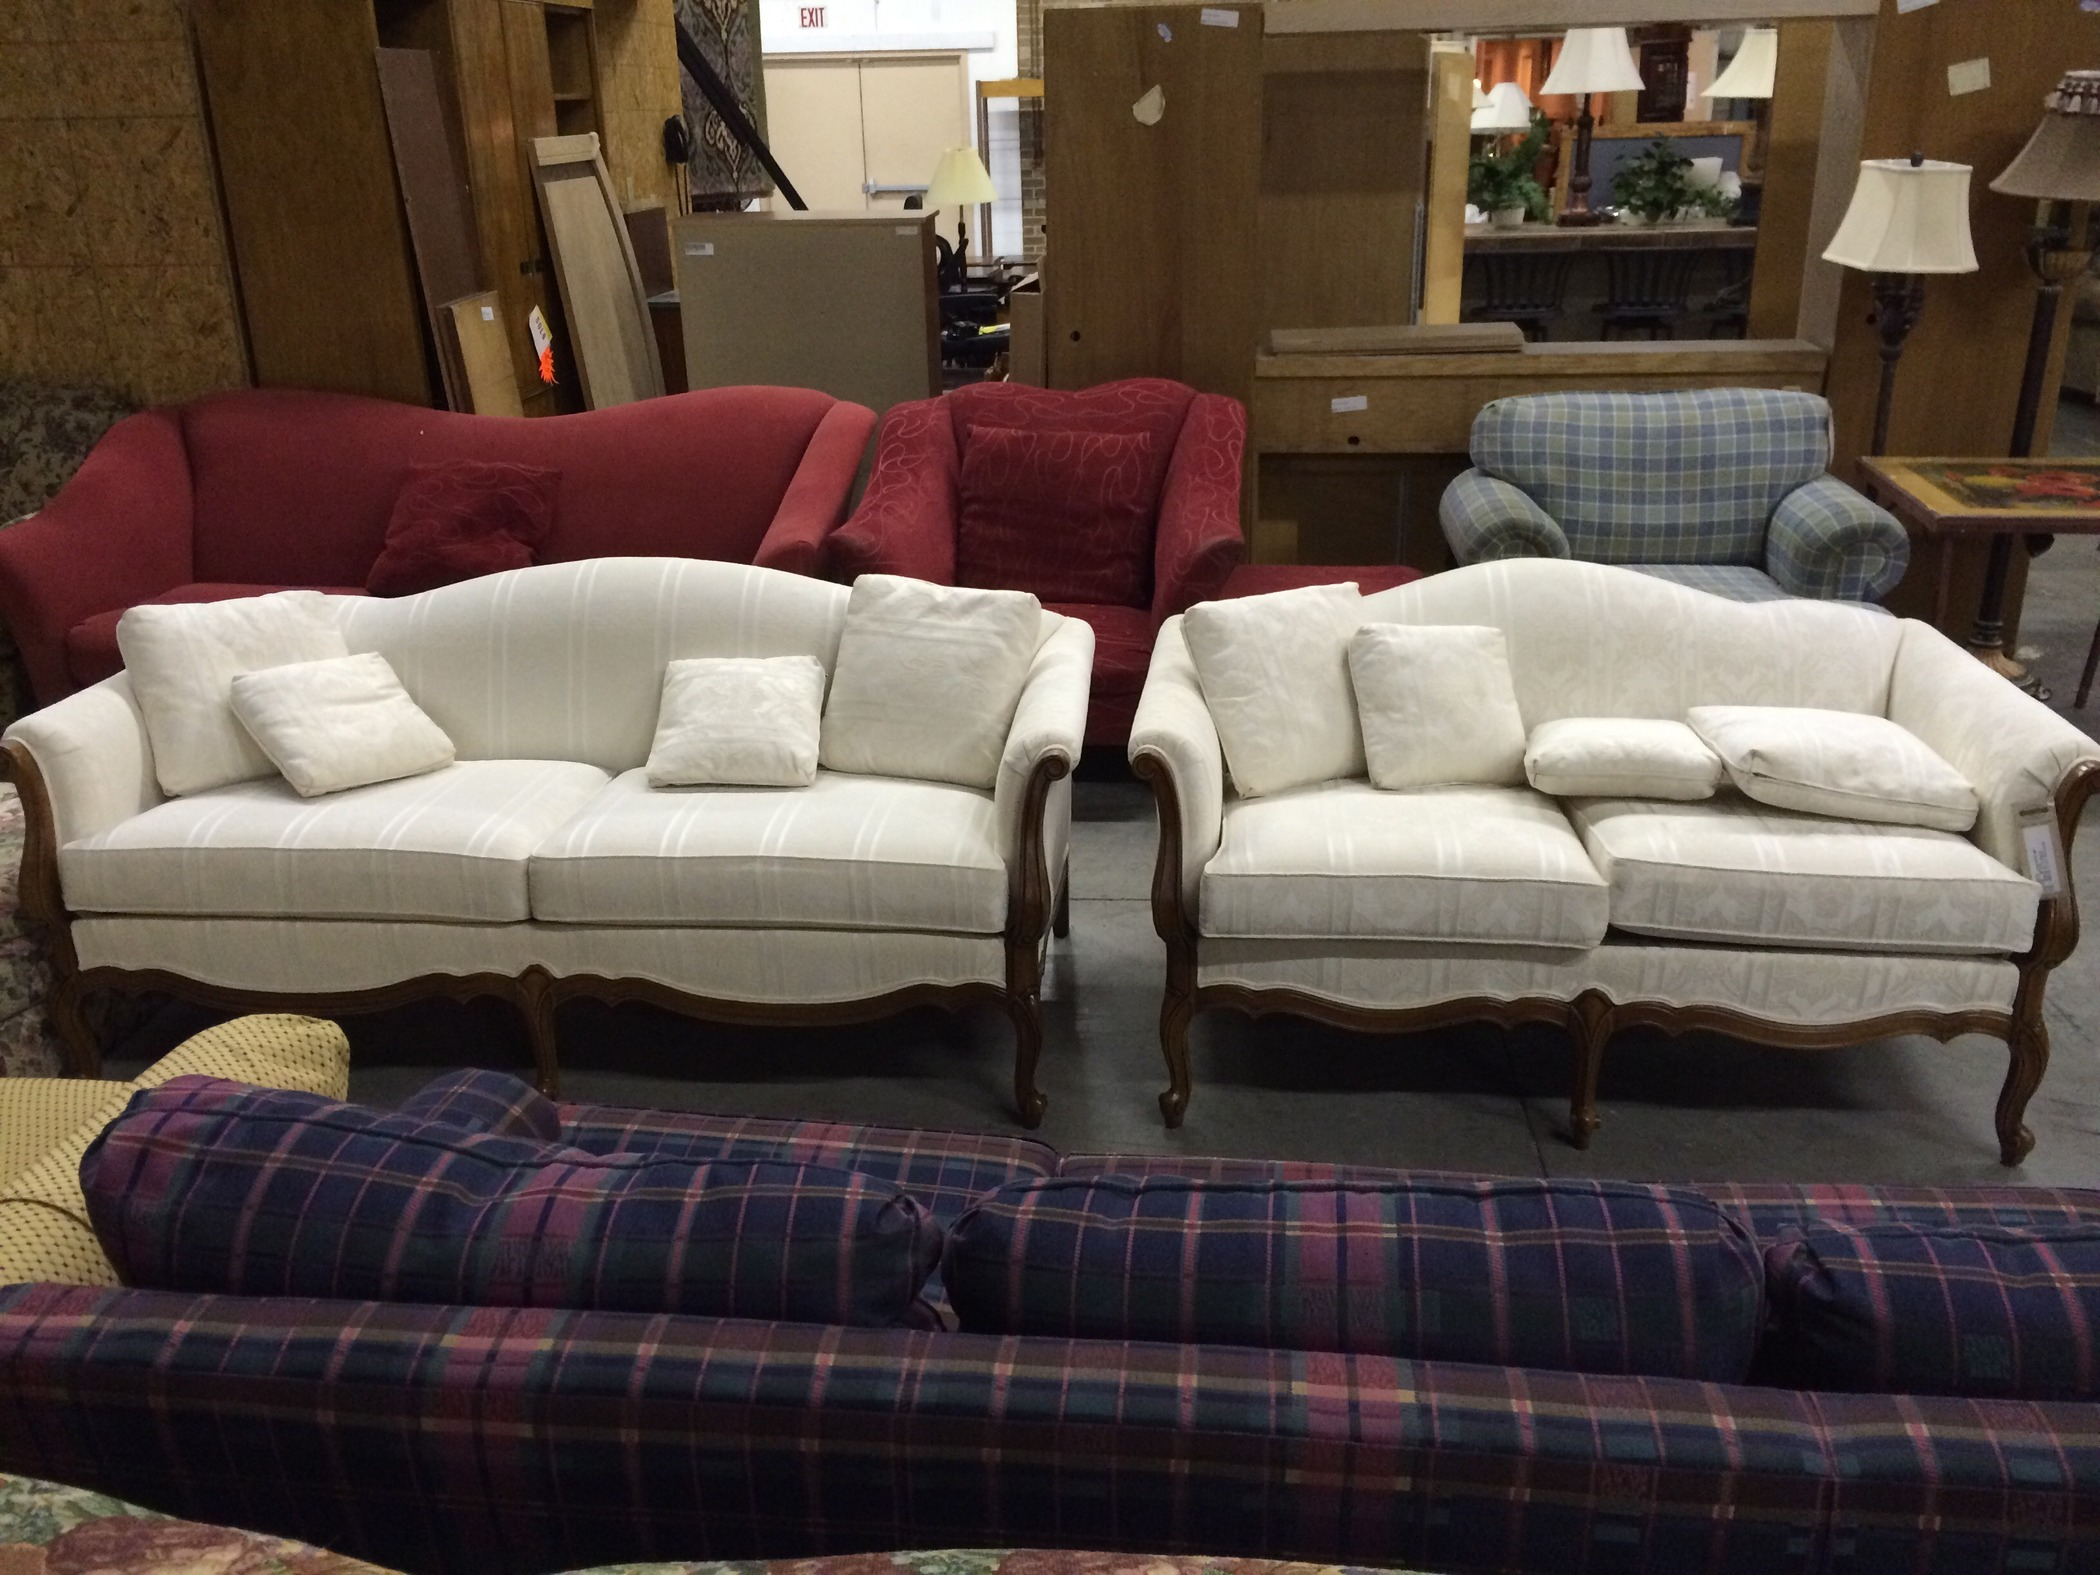 THOMASVILLE LIVING ROOM SET Allegheny Furniture Consignment